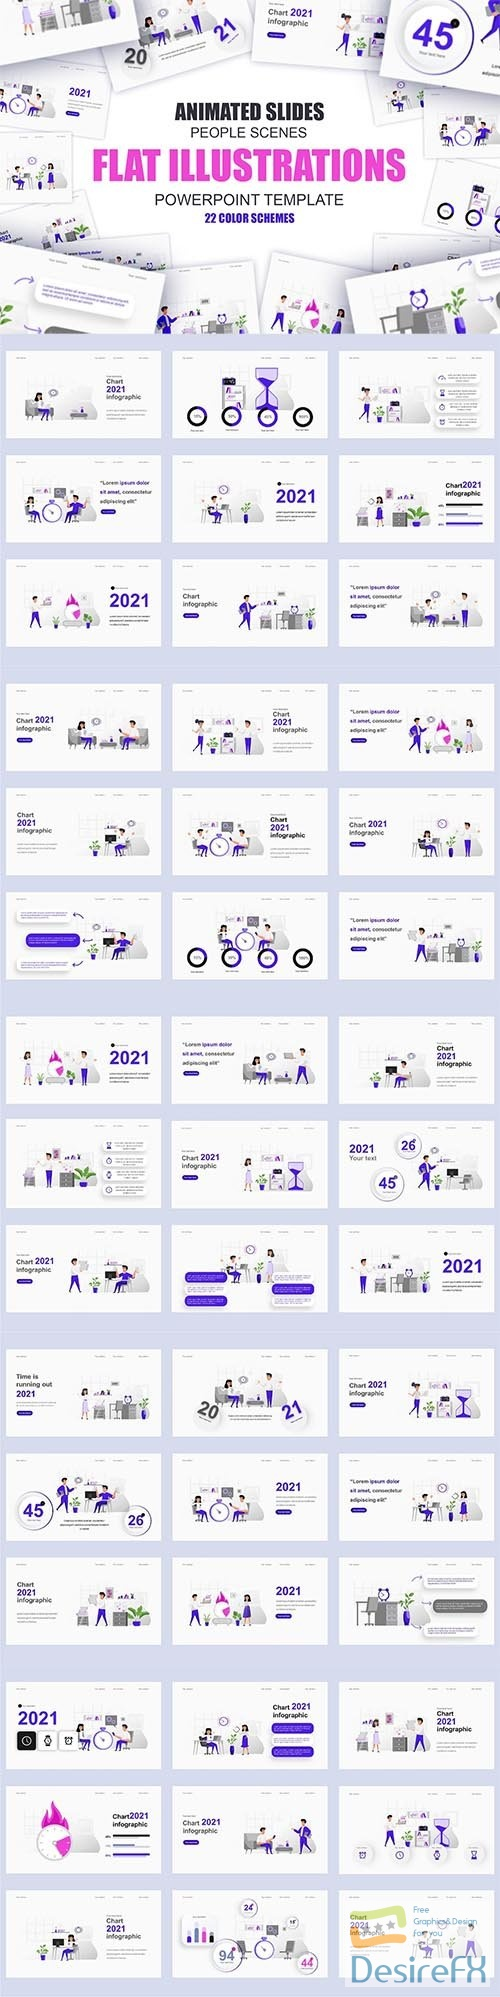 Business Illustration Powerpoint Template